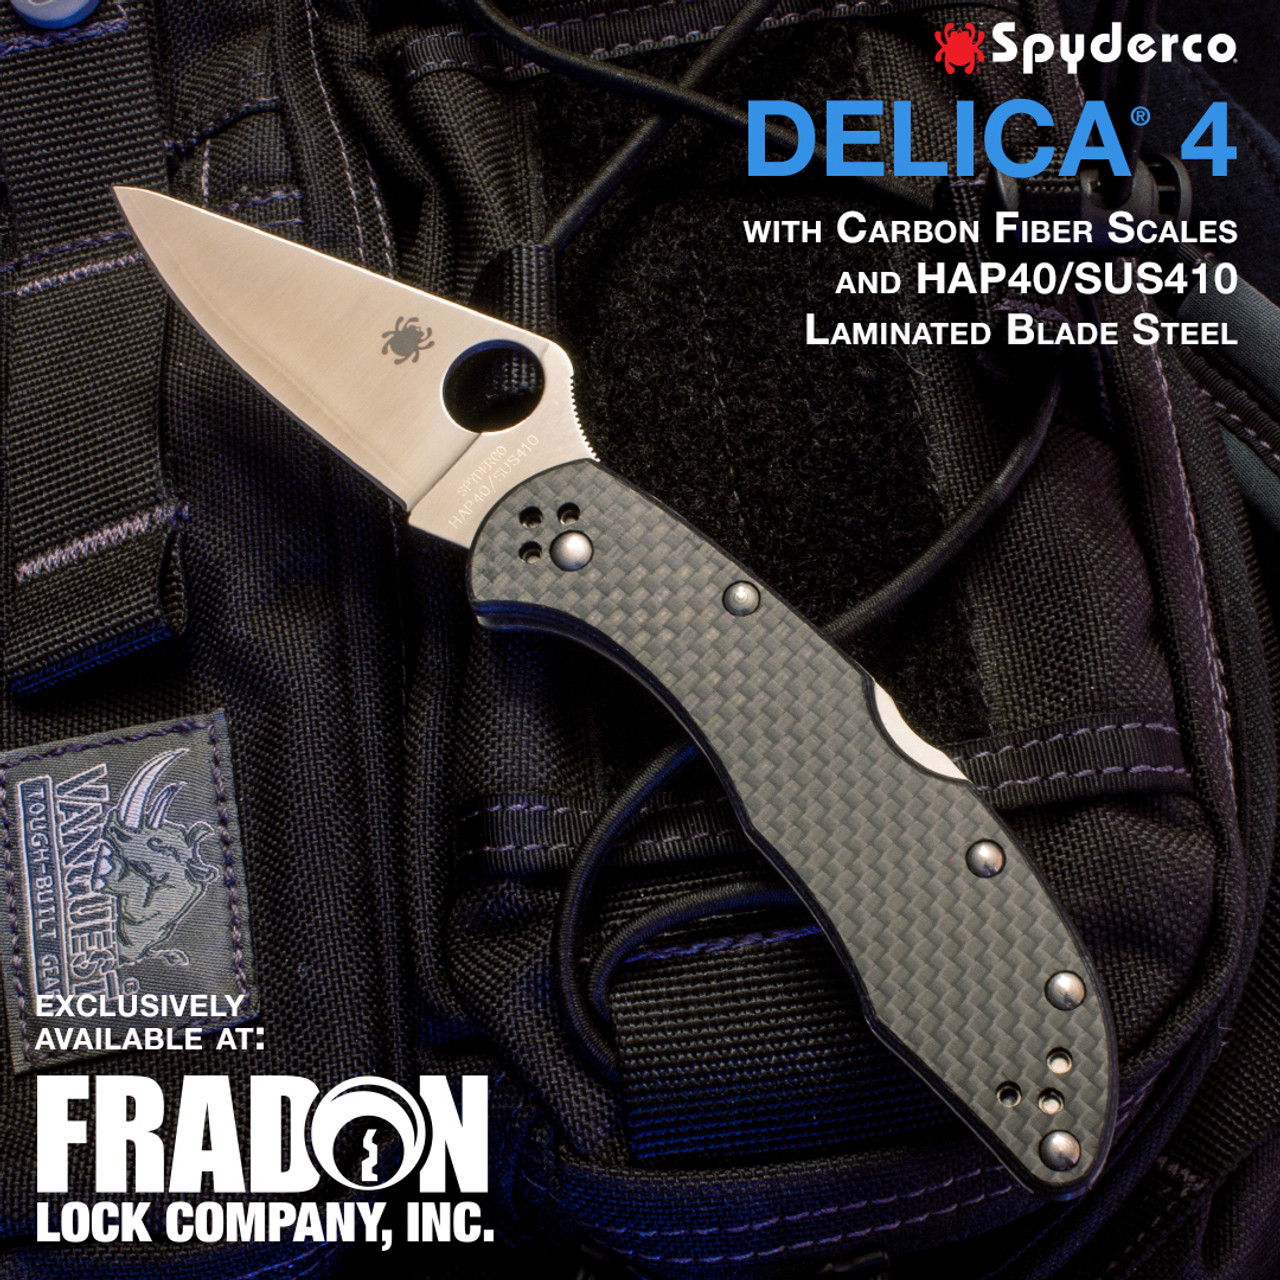 Holiday Sale! Spyderco Exclusive Delica C11FPCFE HAP40/SUS410 Carbon Fiber Knife